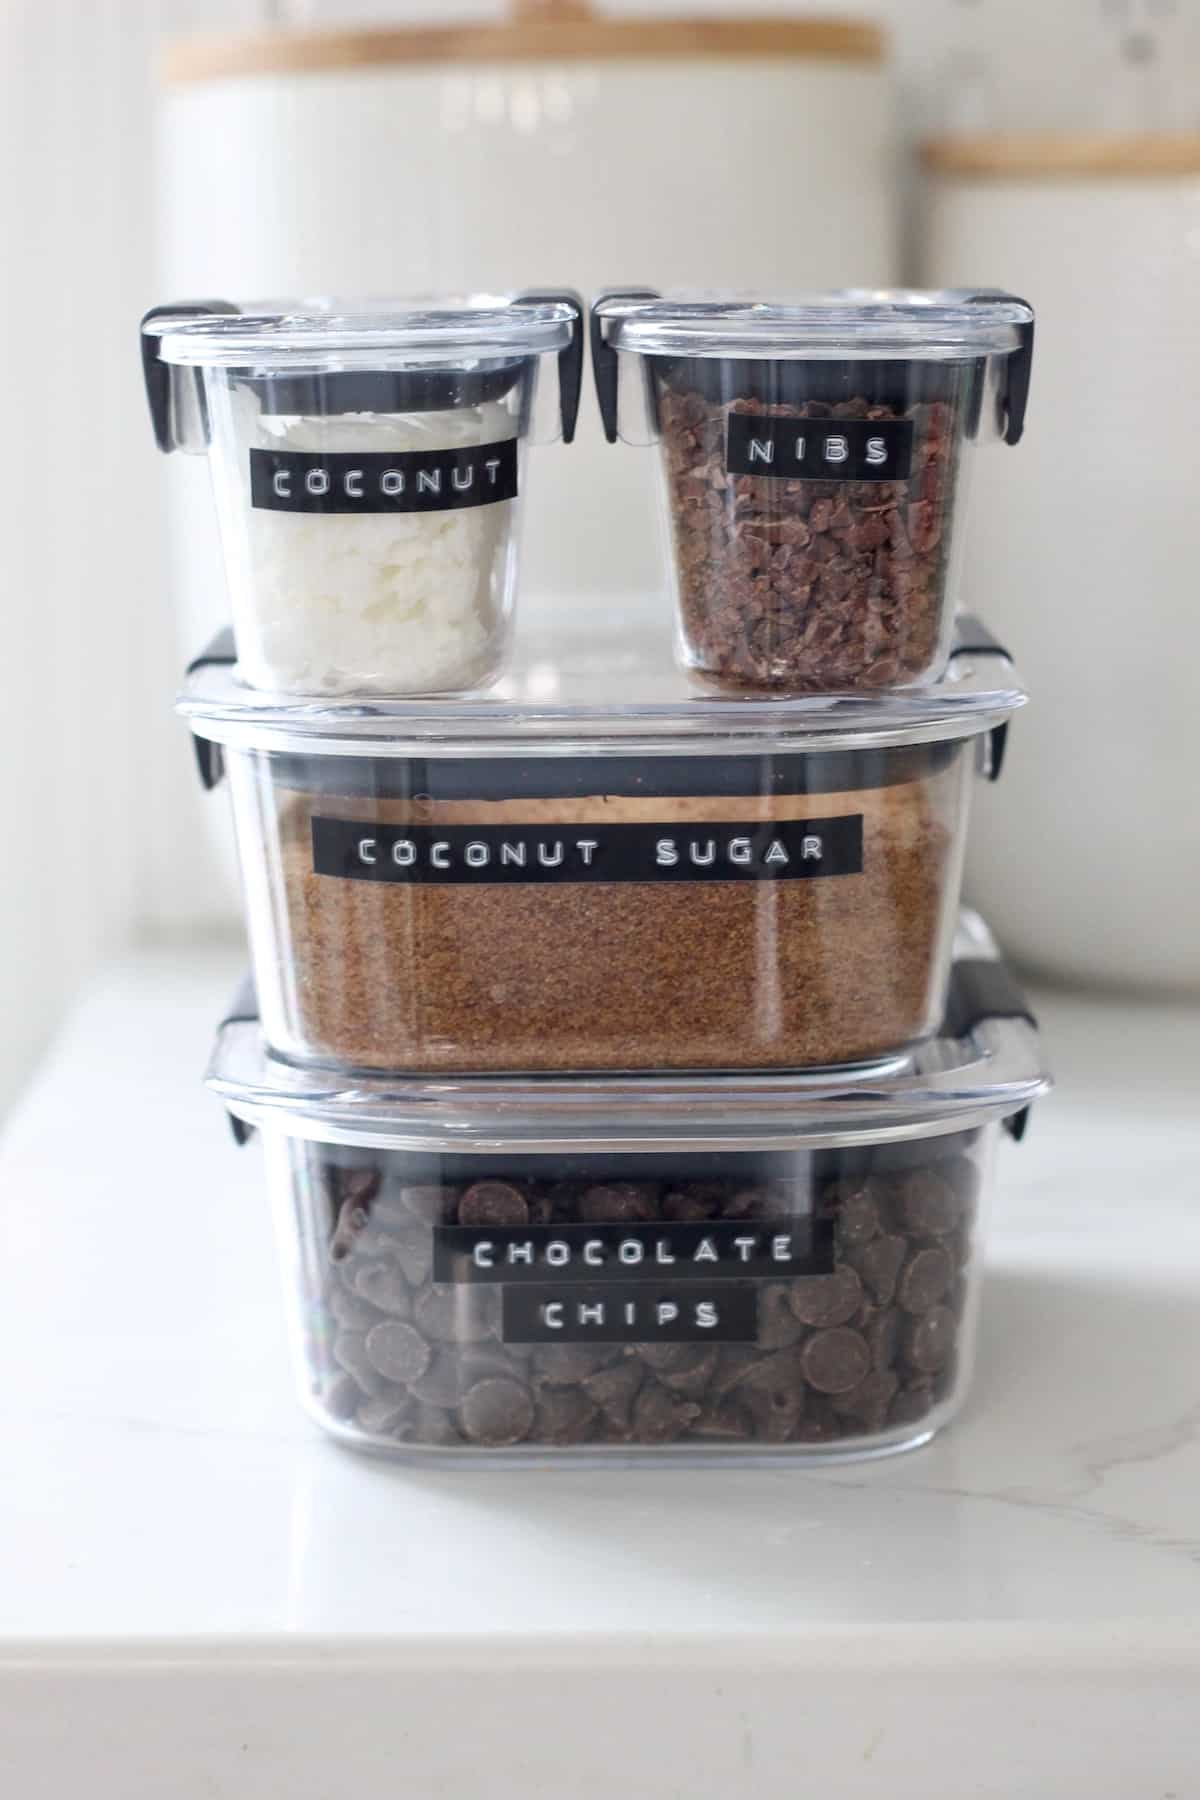 cocoa powder stacked in containers